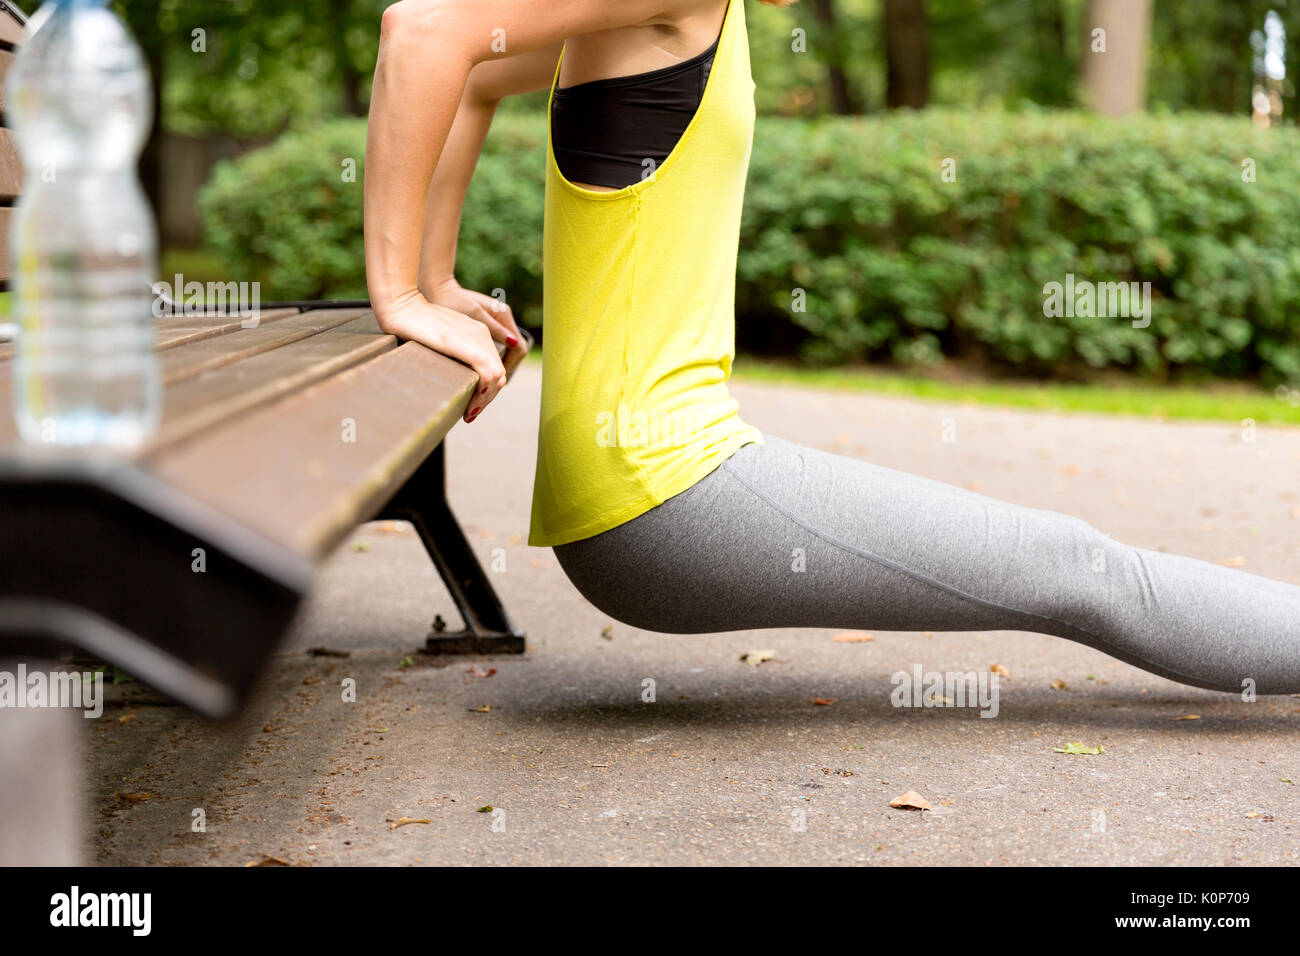 Healthy young woman stretching before fitness and exercise in park, healthy lifestyle concept - Stock Image